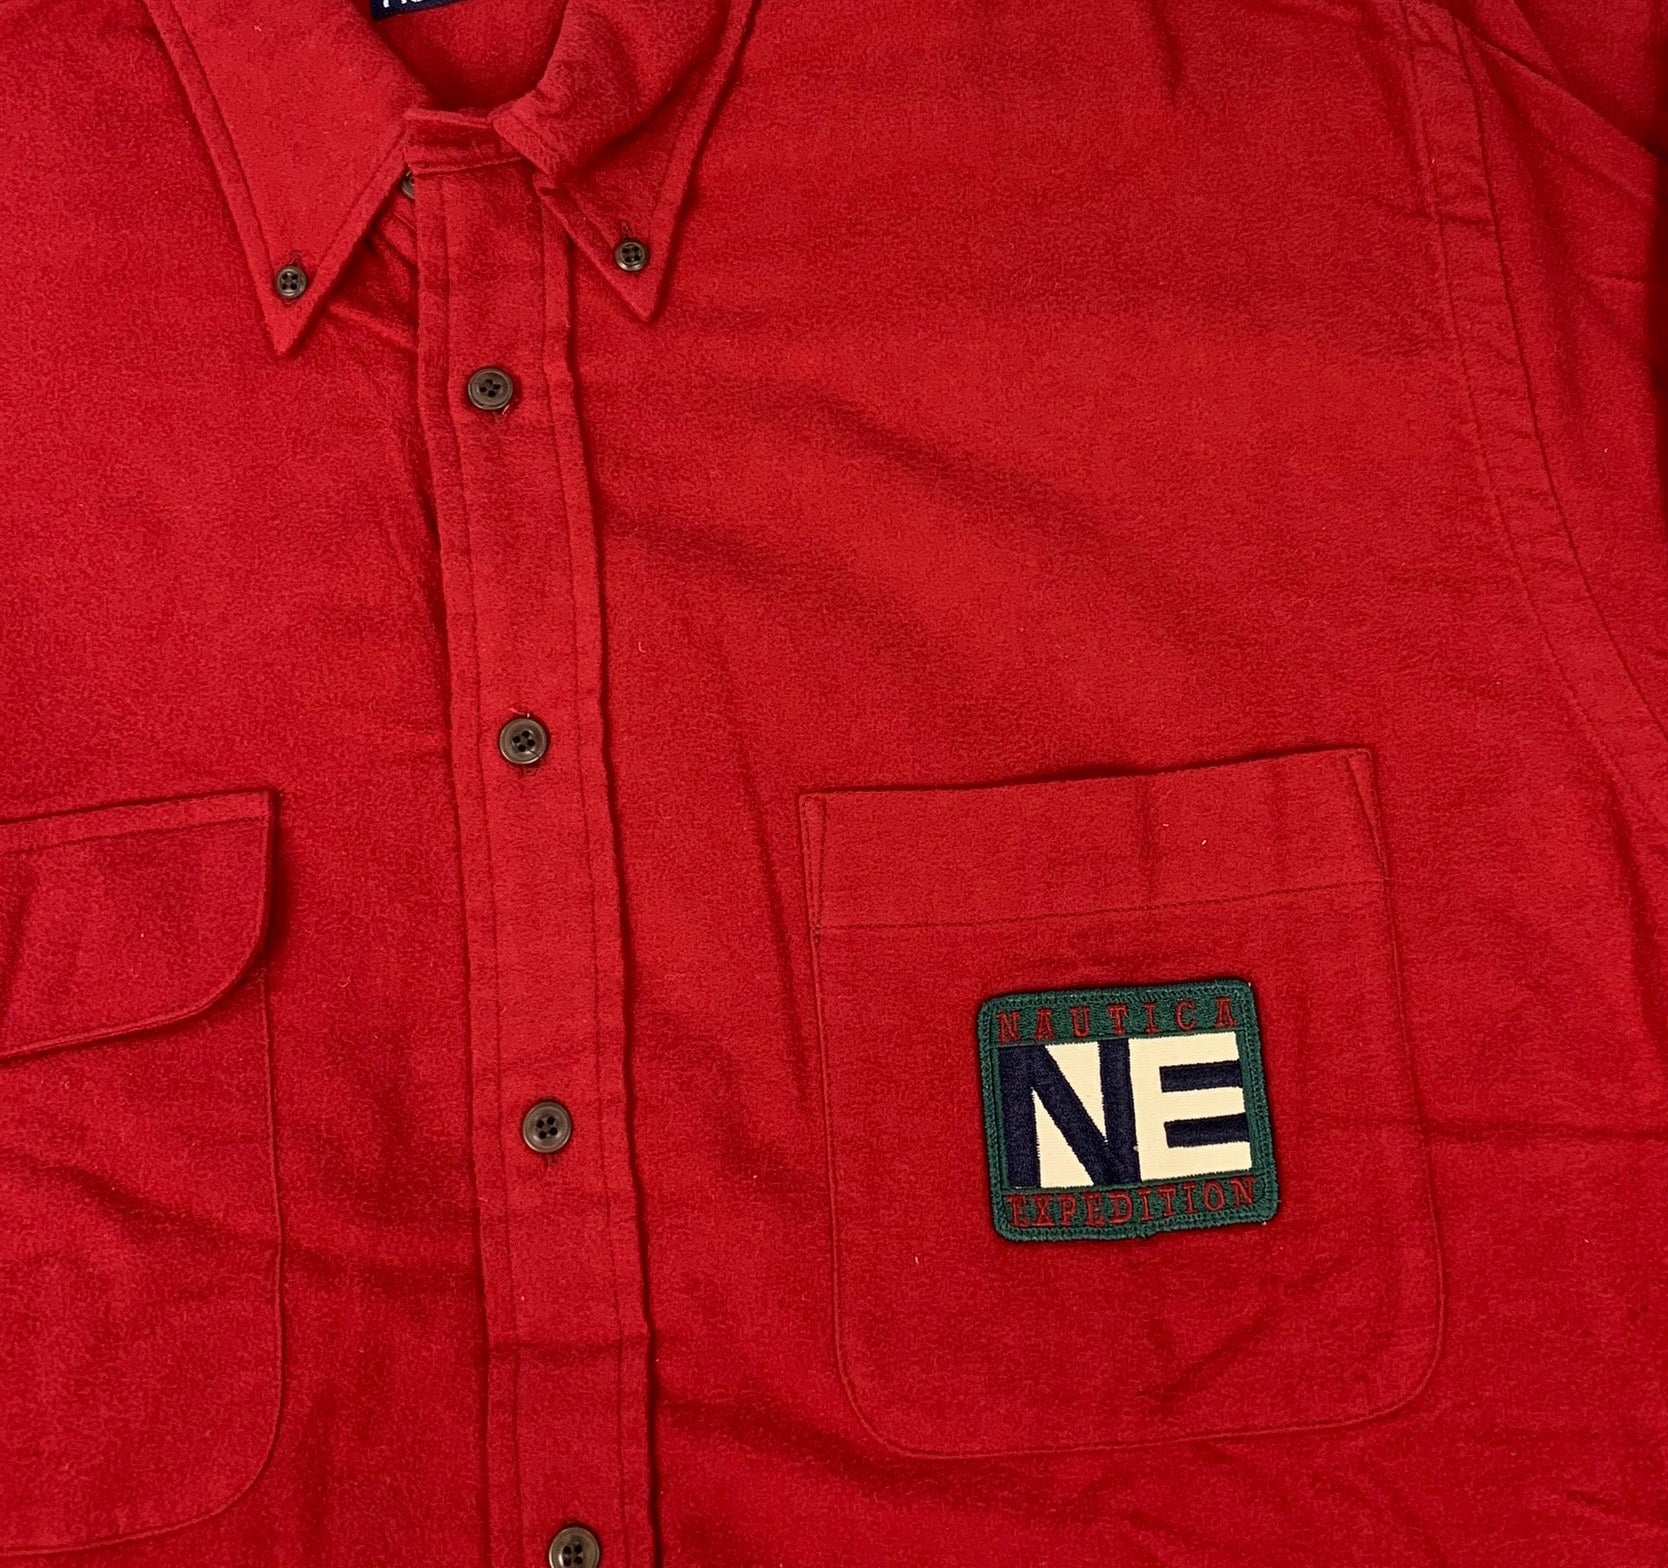 90s Nautica Expedition Button Down Shirt